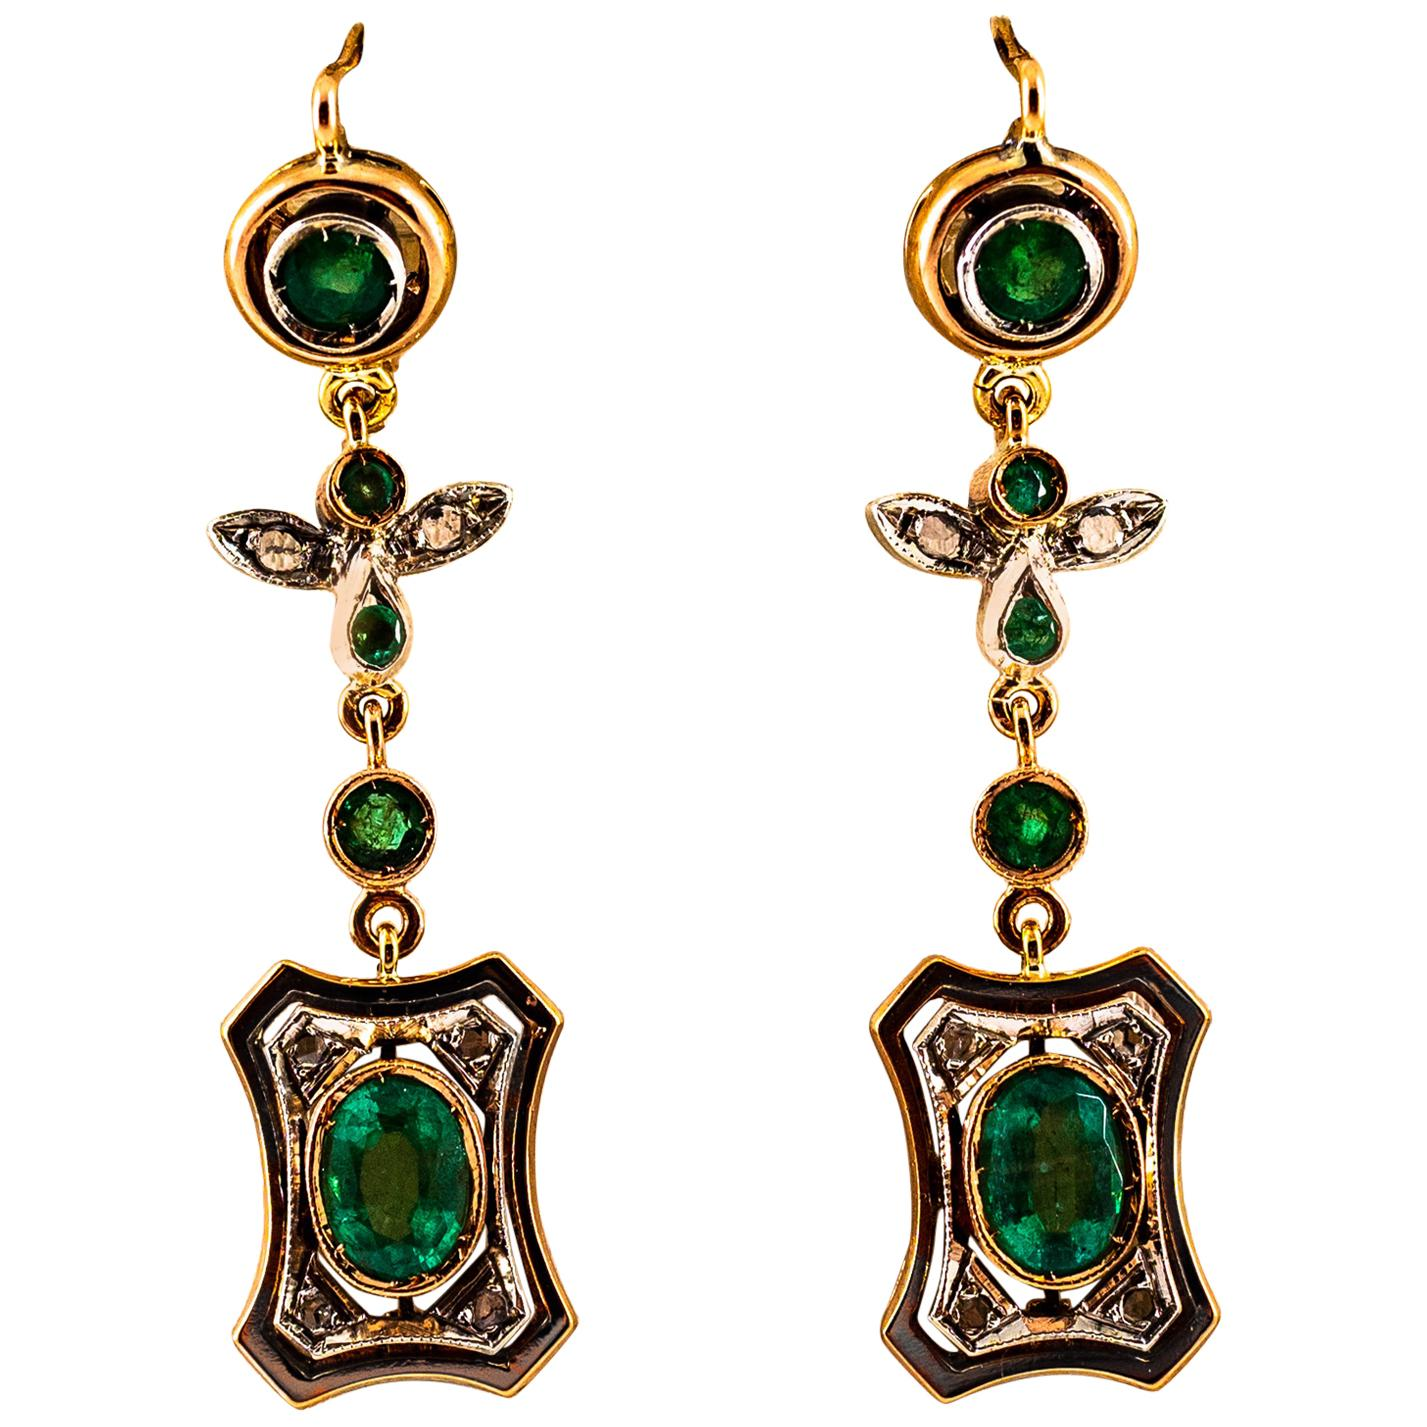 Art Deco Style 2.60 Carat White Rose Cut Diamond Emerald Yellow Gold Earrings